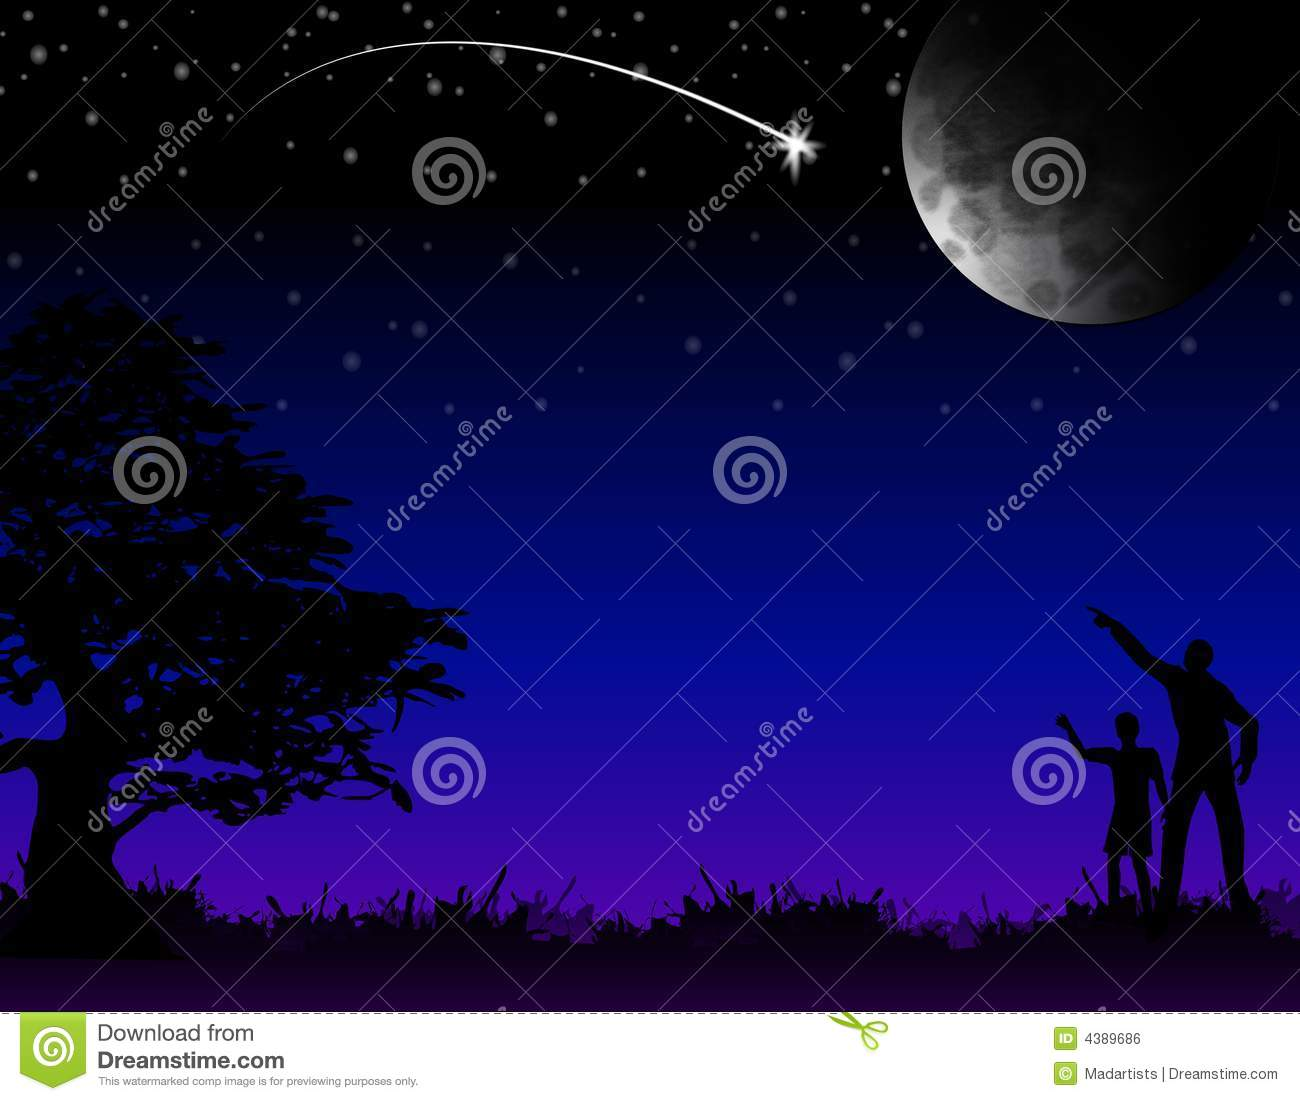 An illustratin featuring a bright shooting star, crescent moon and sky ...